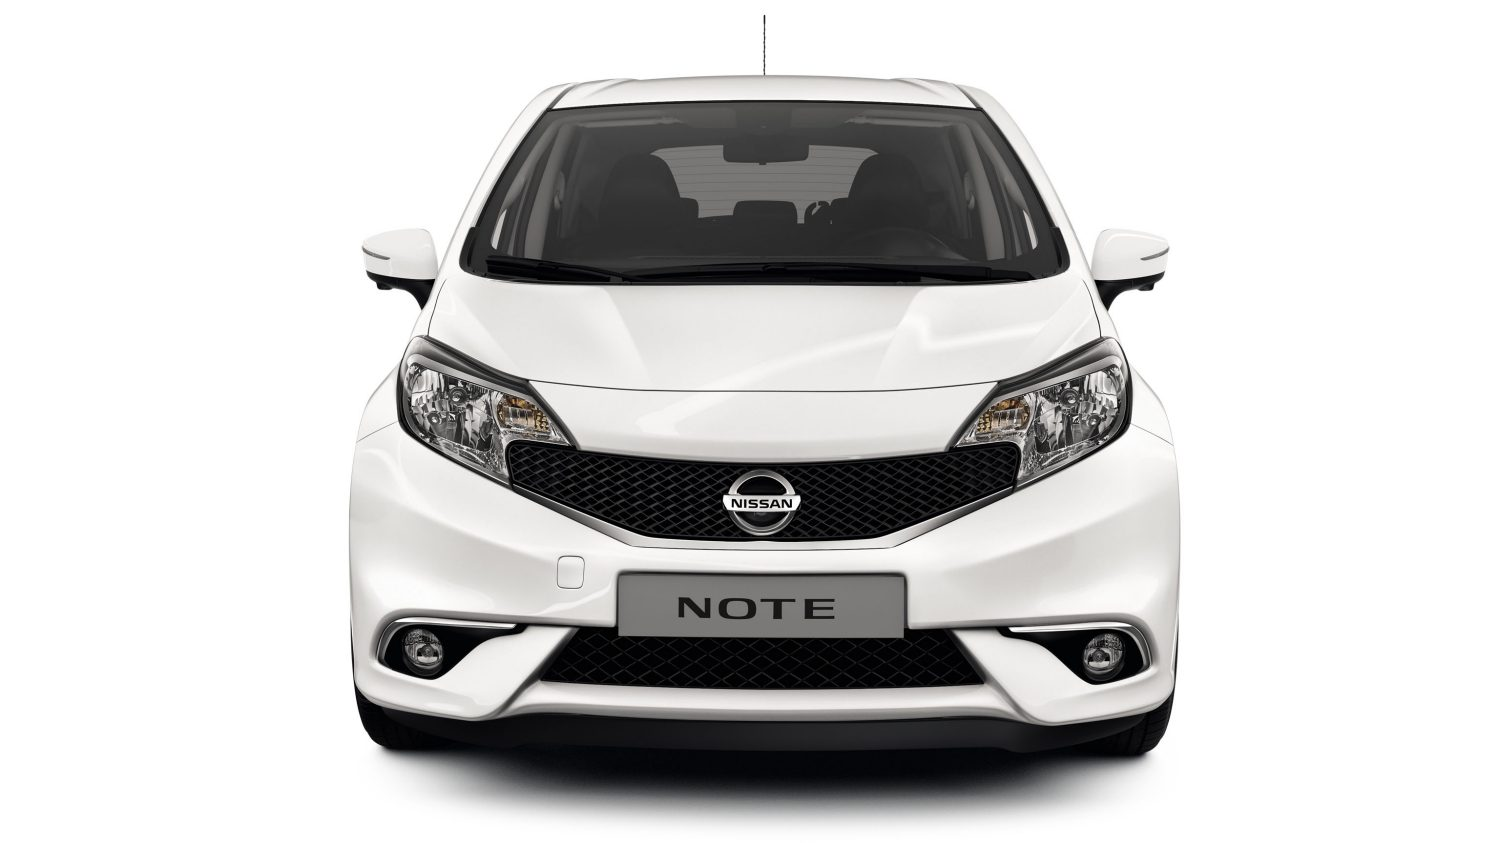 Nissan Note - front view